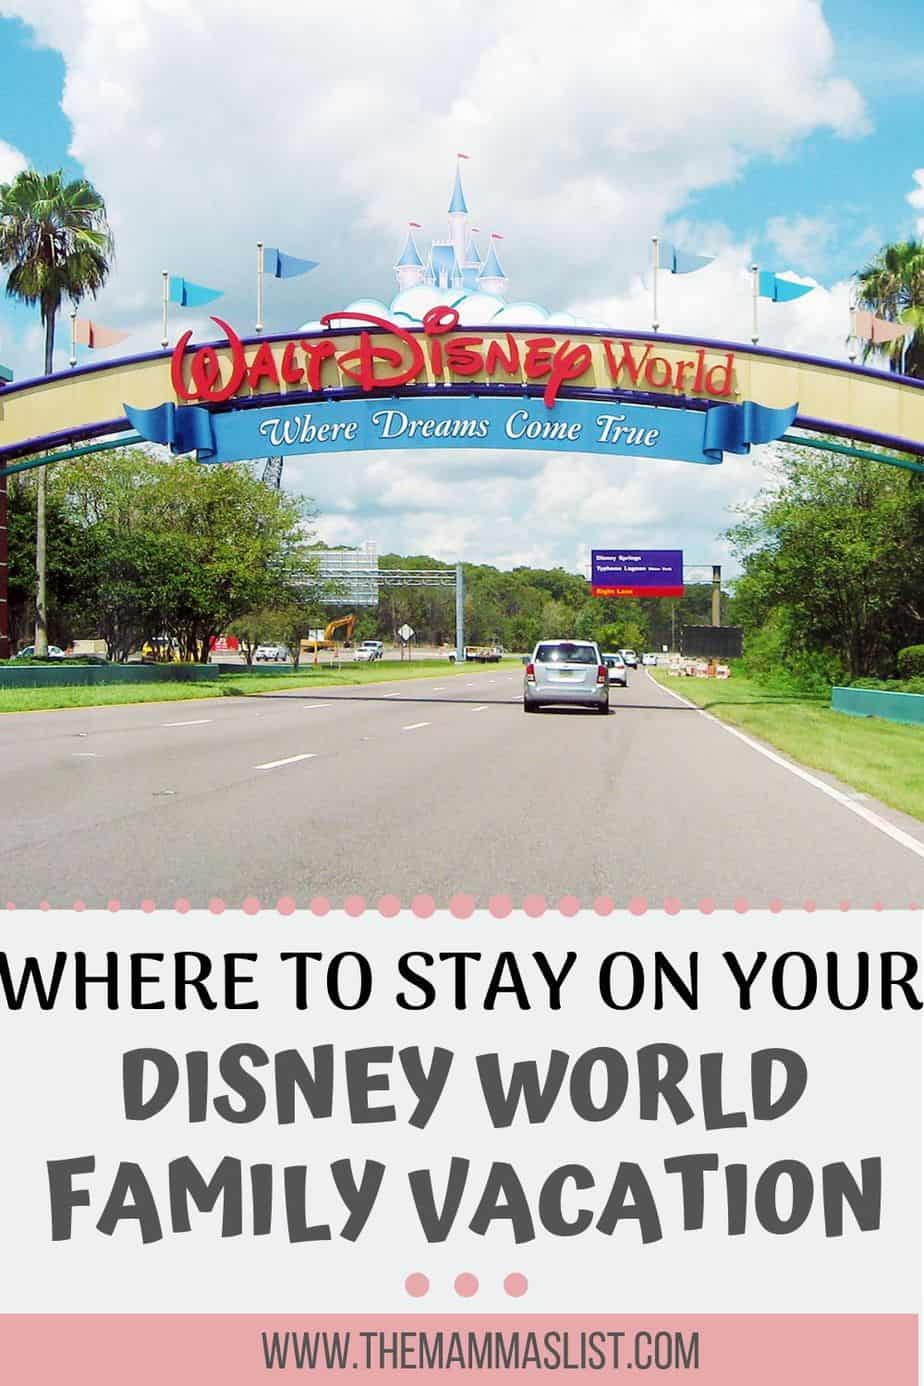 There are so many places you can stay at disney world. Based on your budget, trip goals, and how old your kids are, you have a ton of options. If you want to stay on property at Disney World or off property, there are great places to stay for every budget.